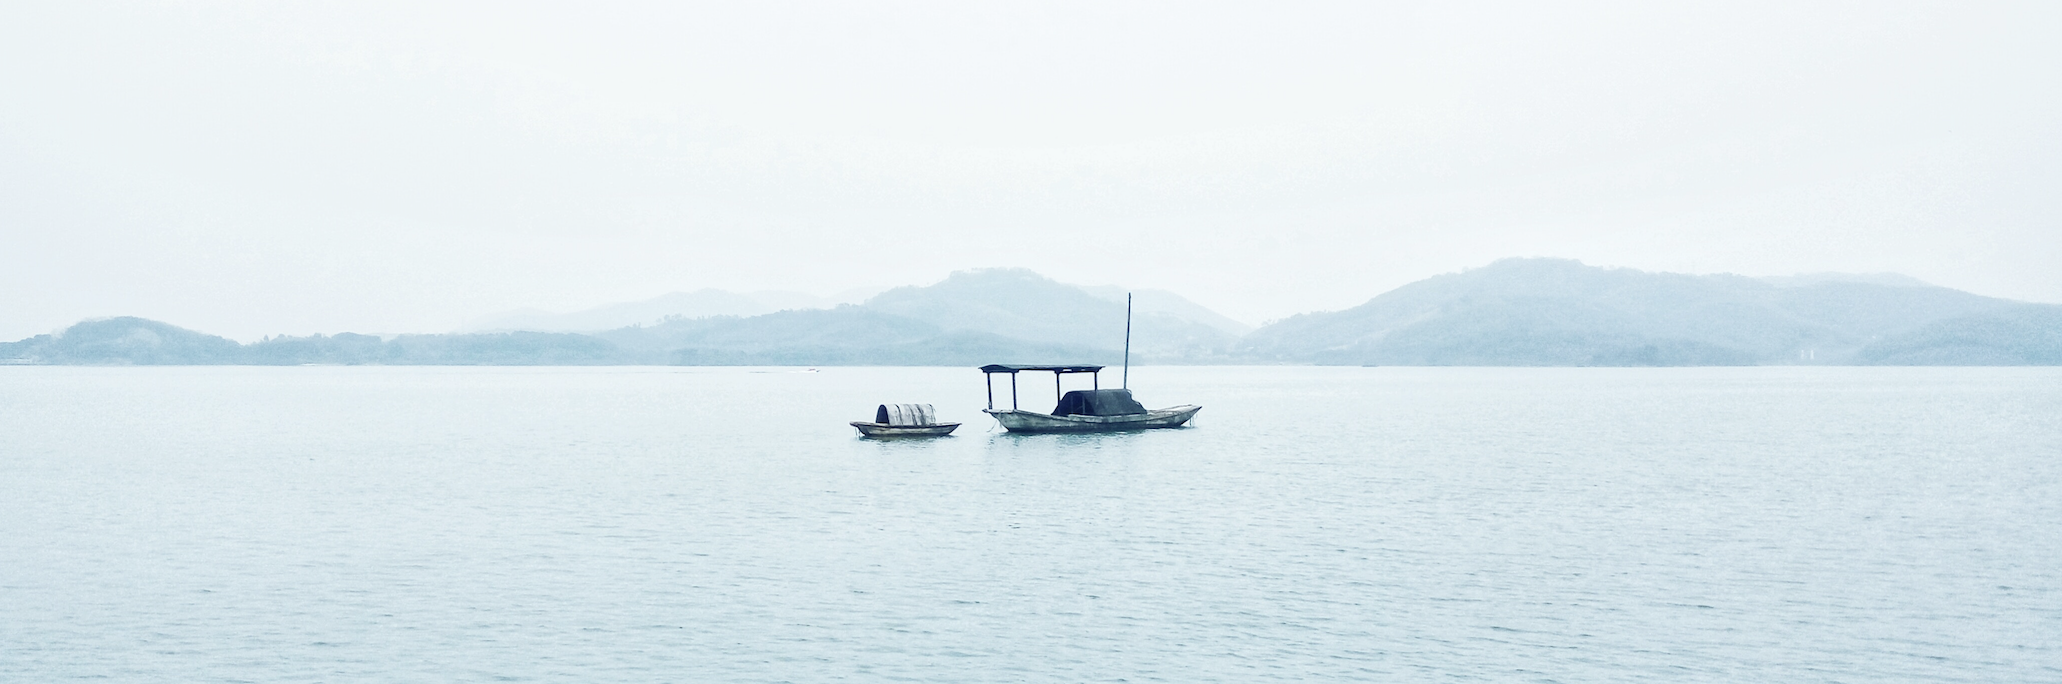 Small boat on a lake